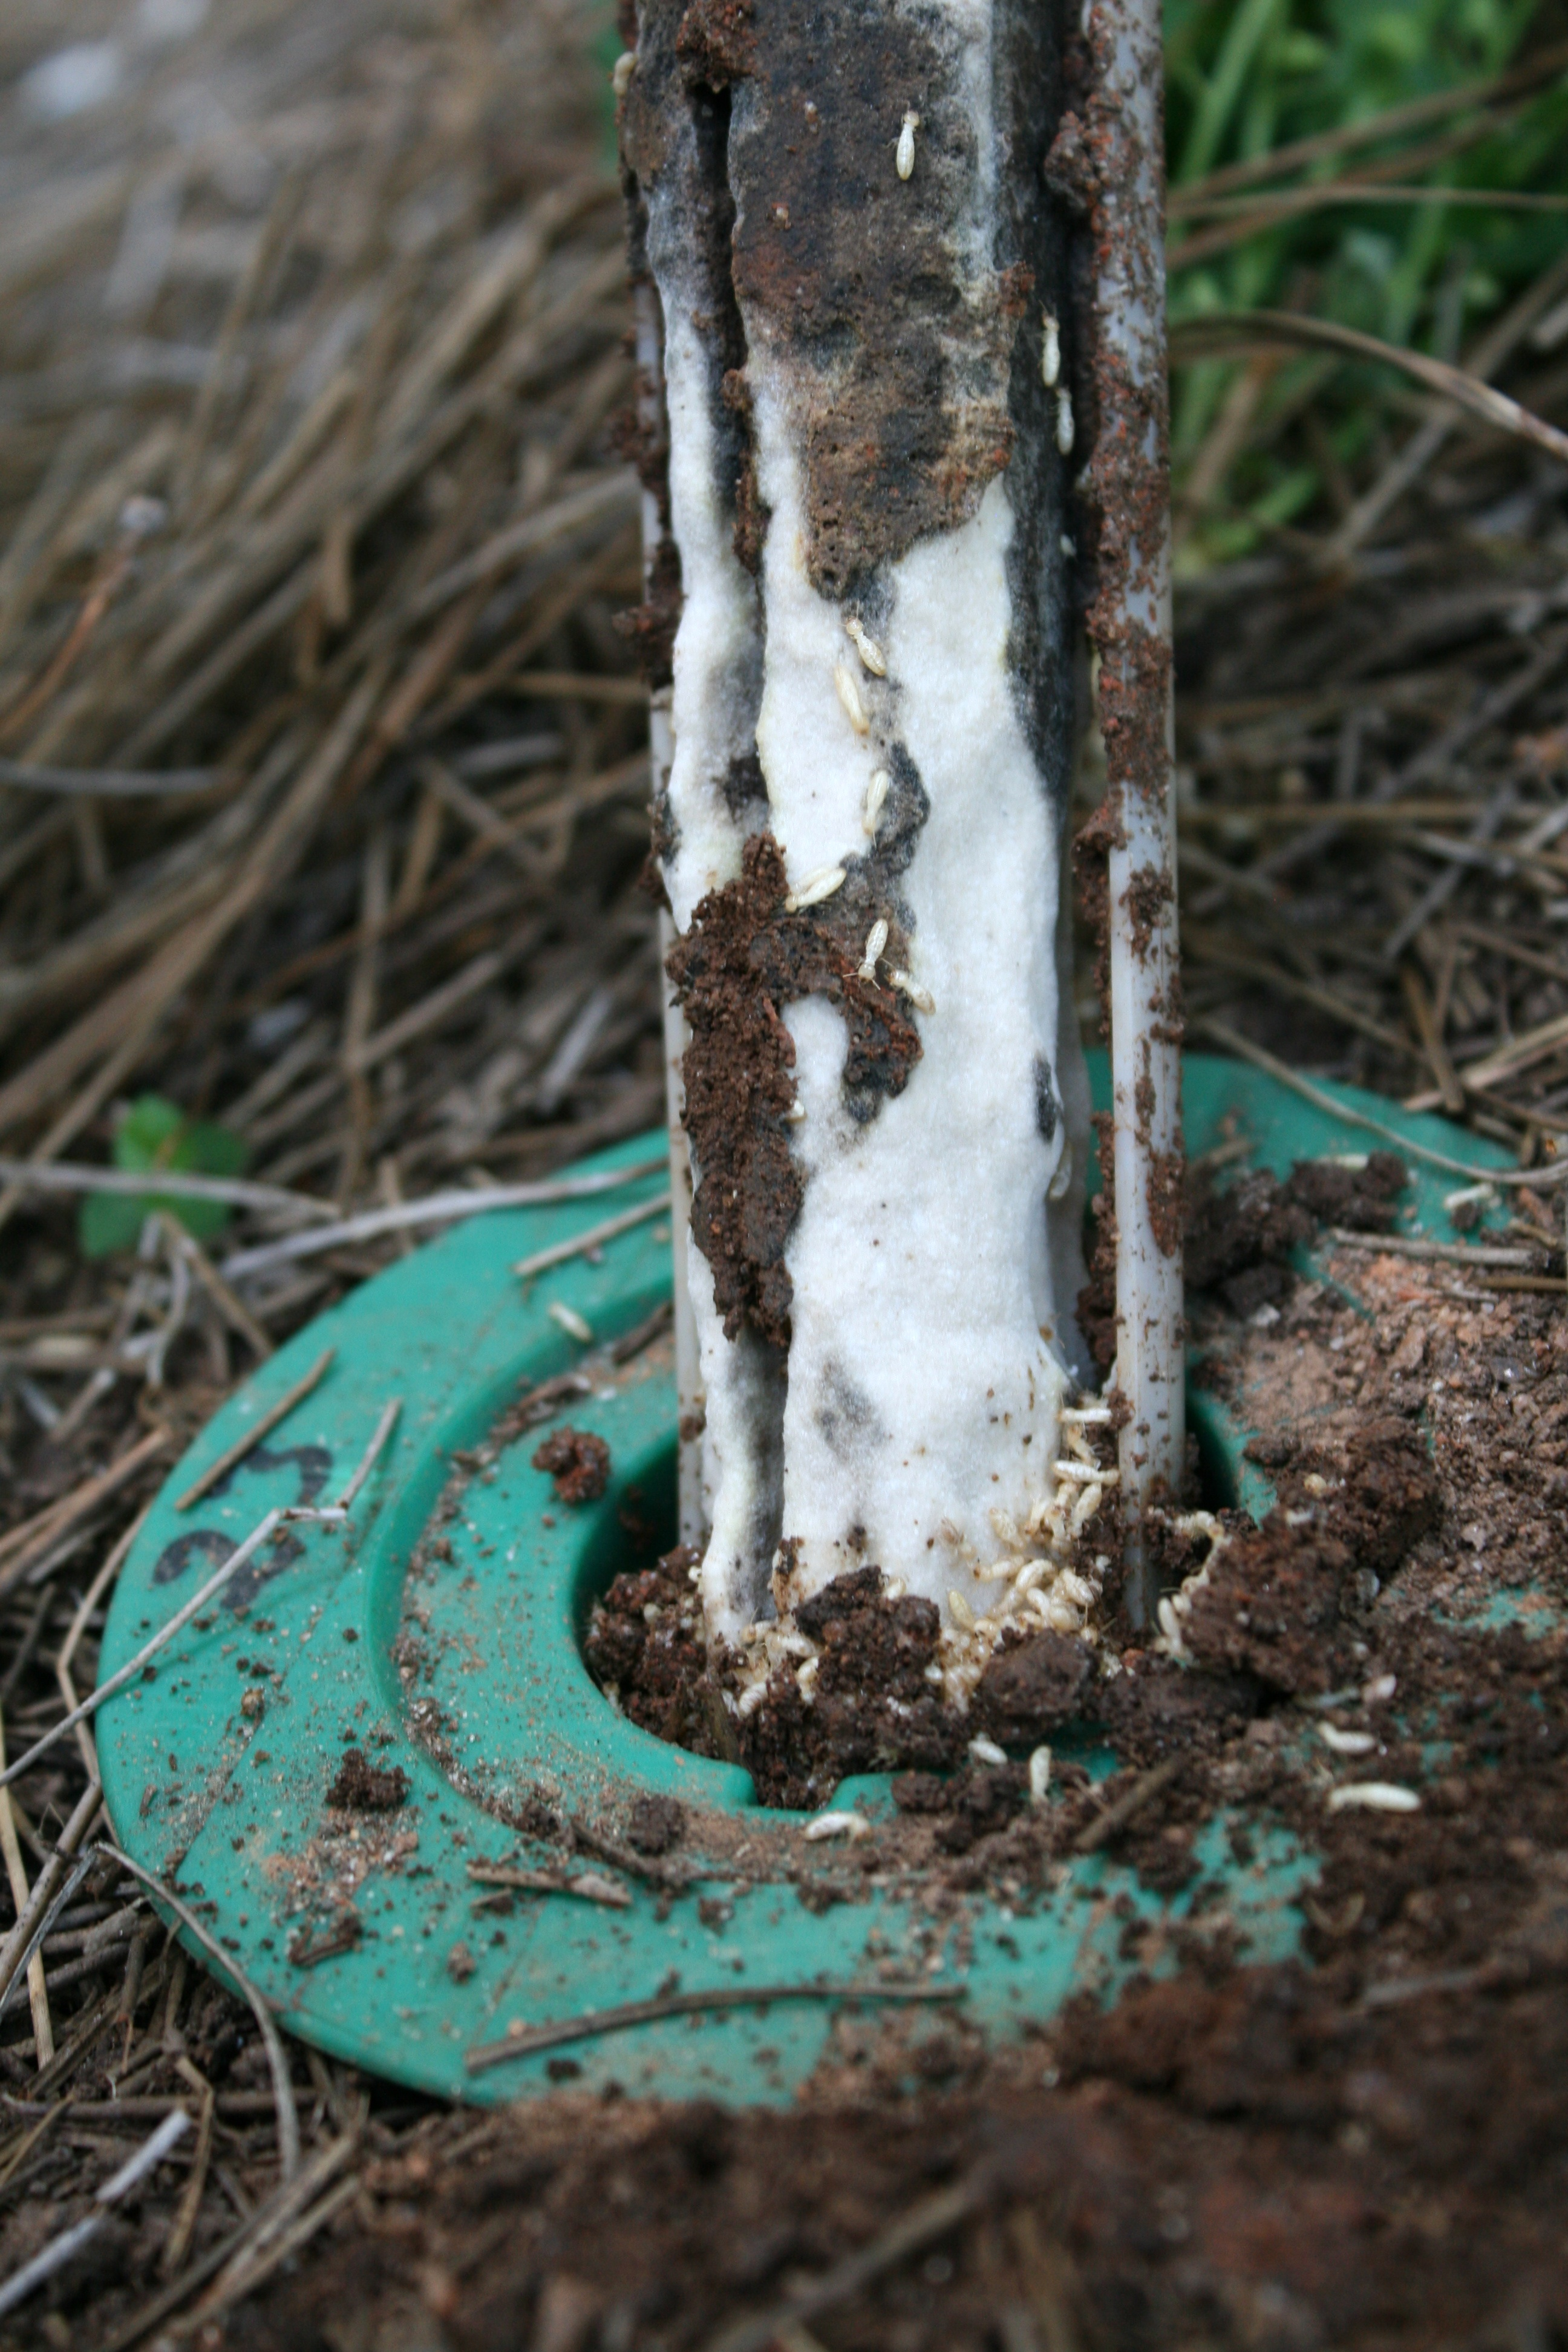 Termites feed on bait in a bait station